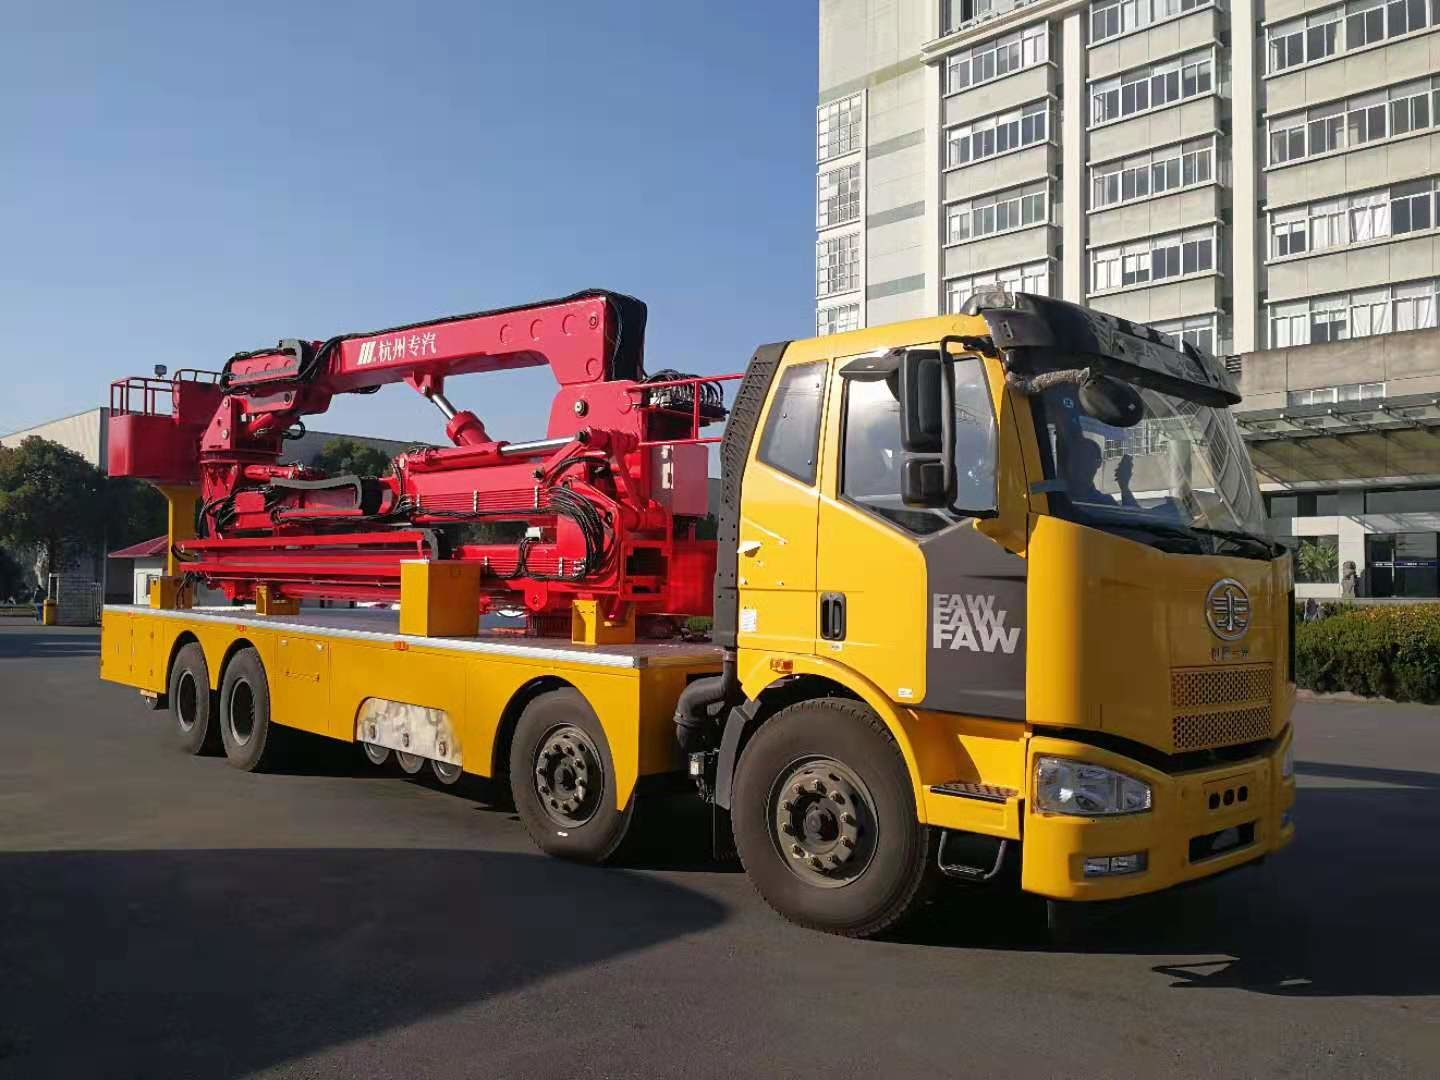 Bucket Type 18m Bridge Inspection Vehicle With FAW Chassis HZZ5311JQJJF